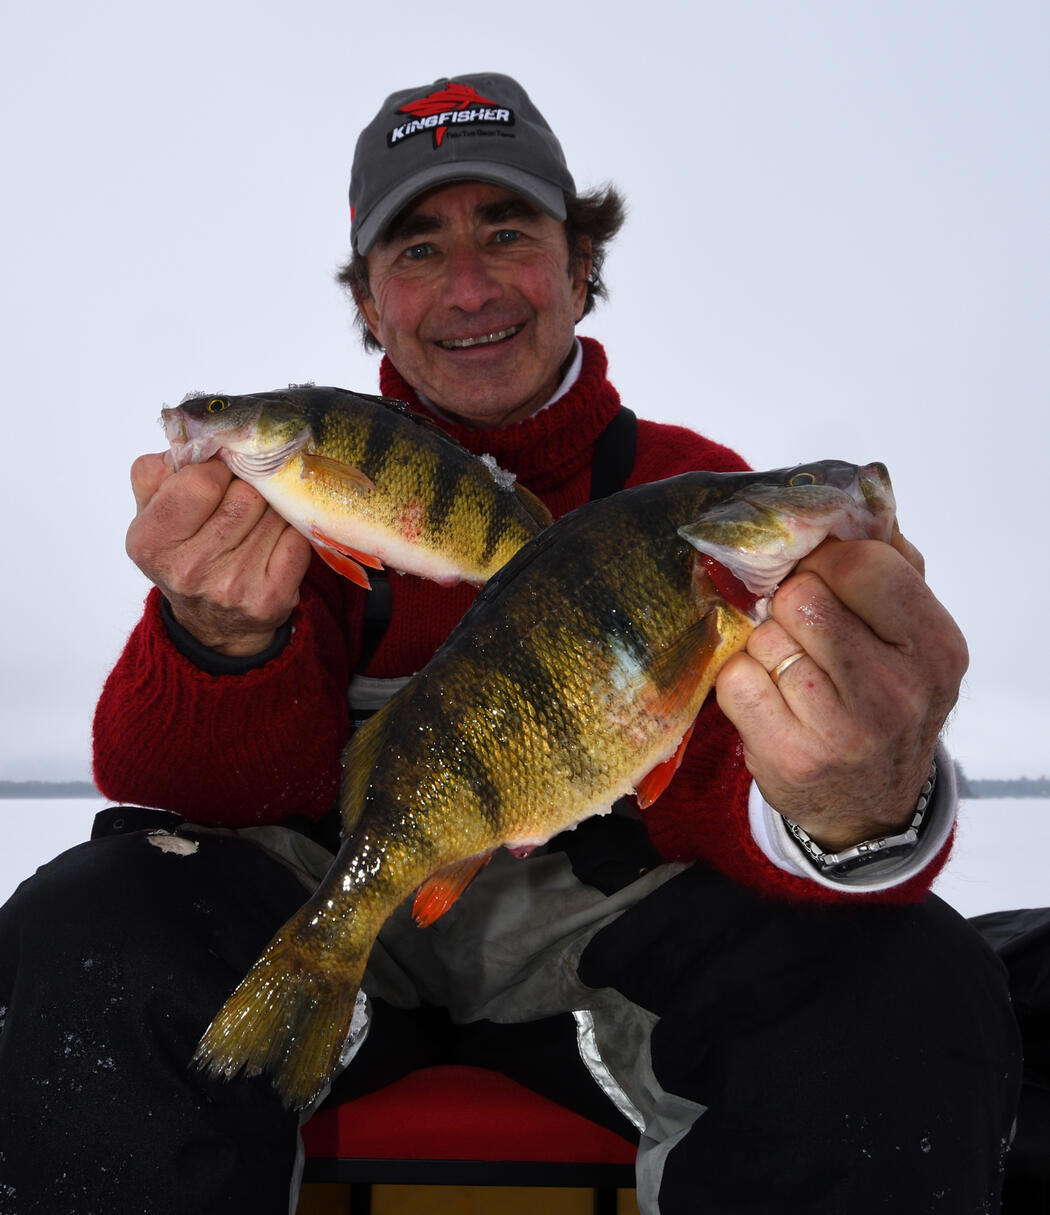 ice angler holding perch